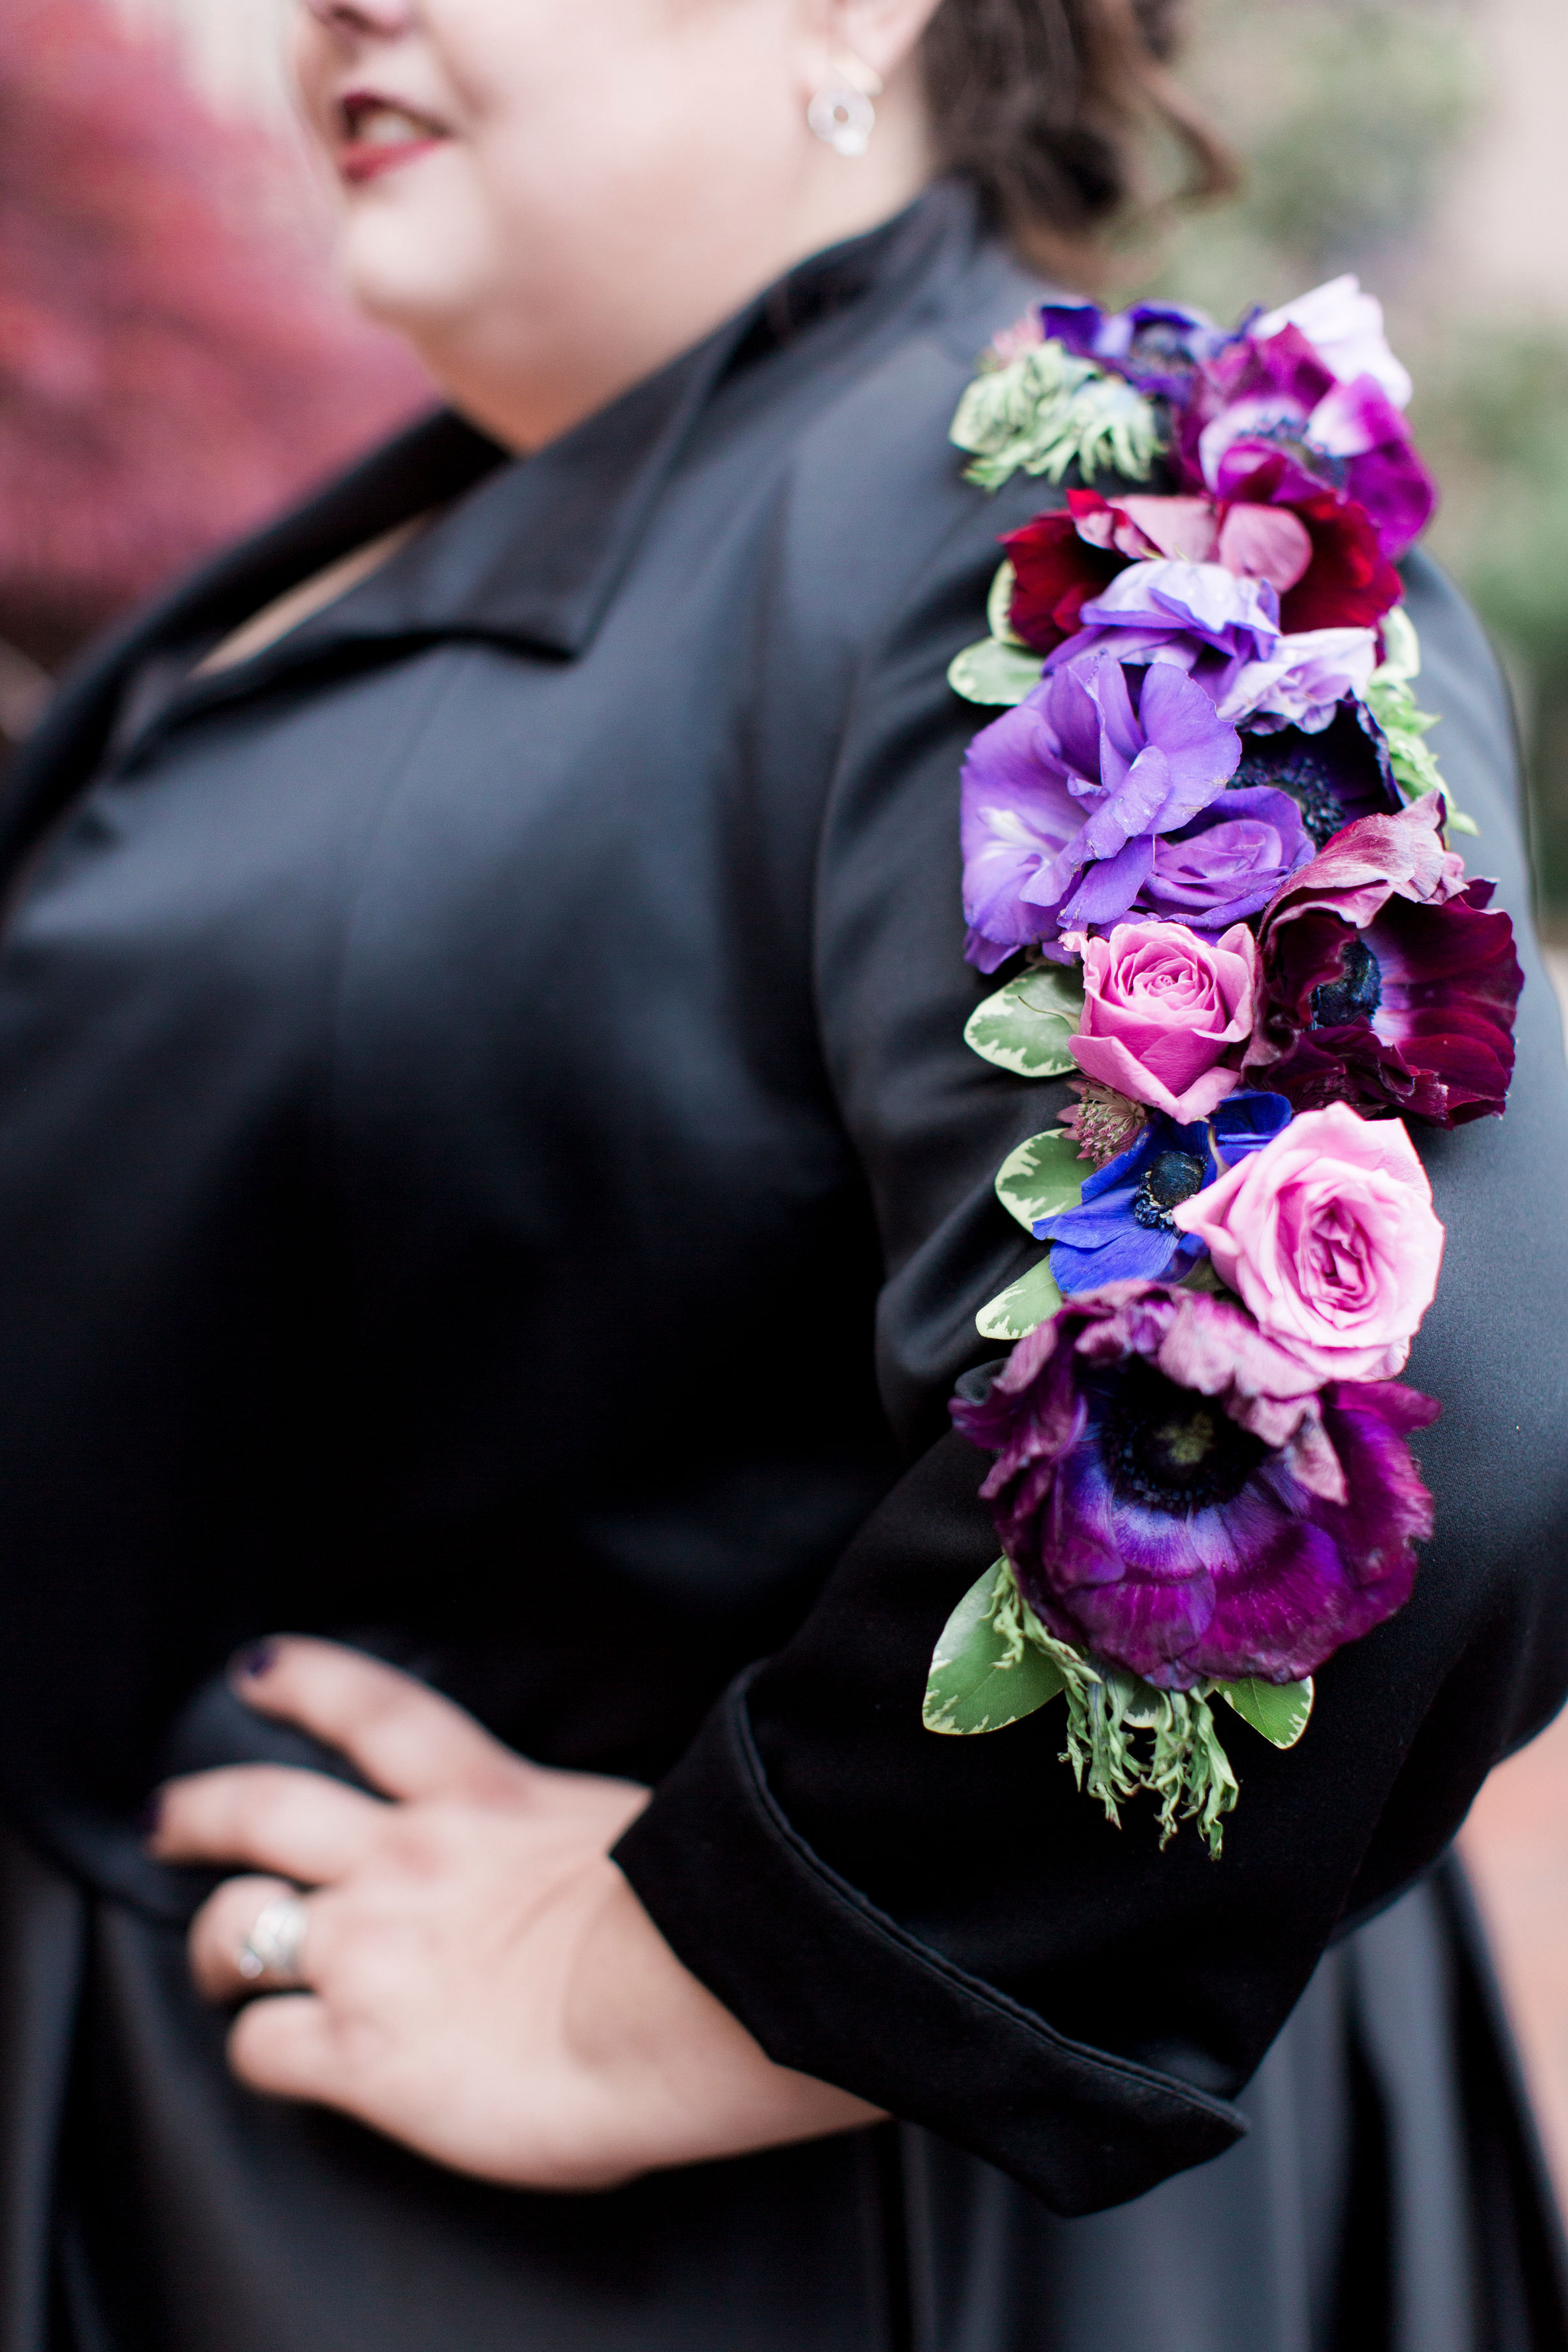 floral tattoo floral sleeve grooms woman wedding flowers personal flowers bolling haxall house richmond virginia wedding florist